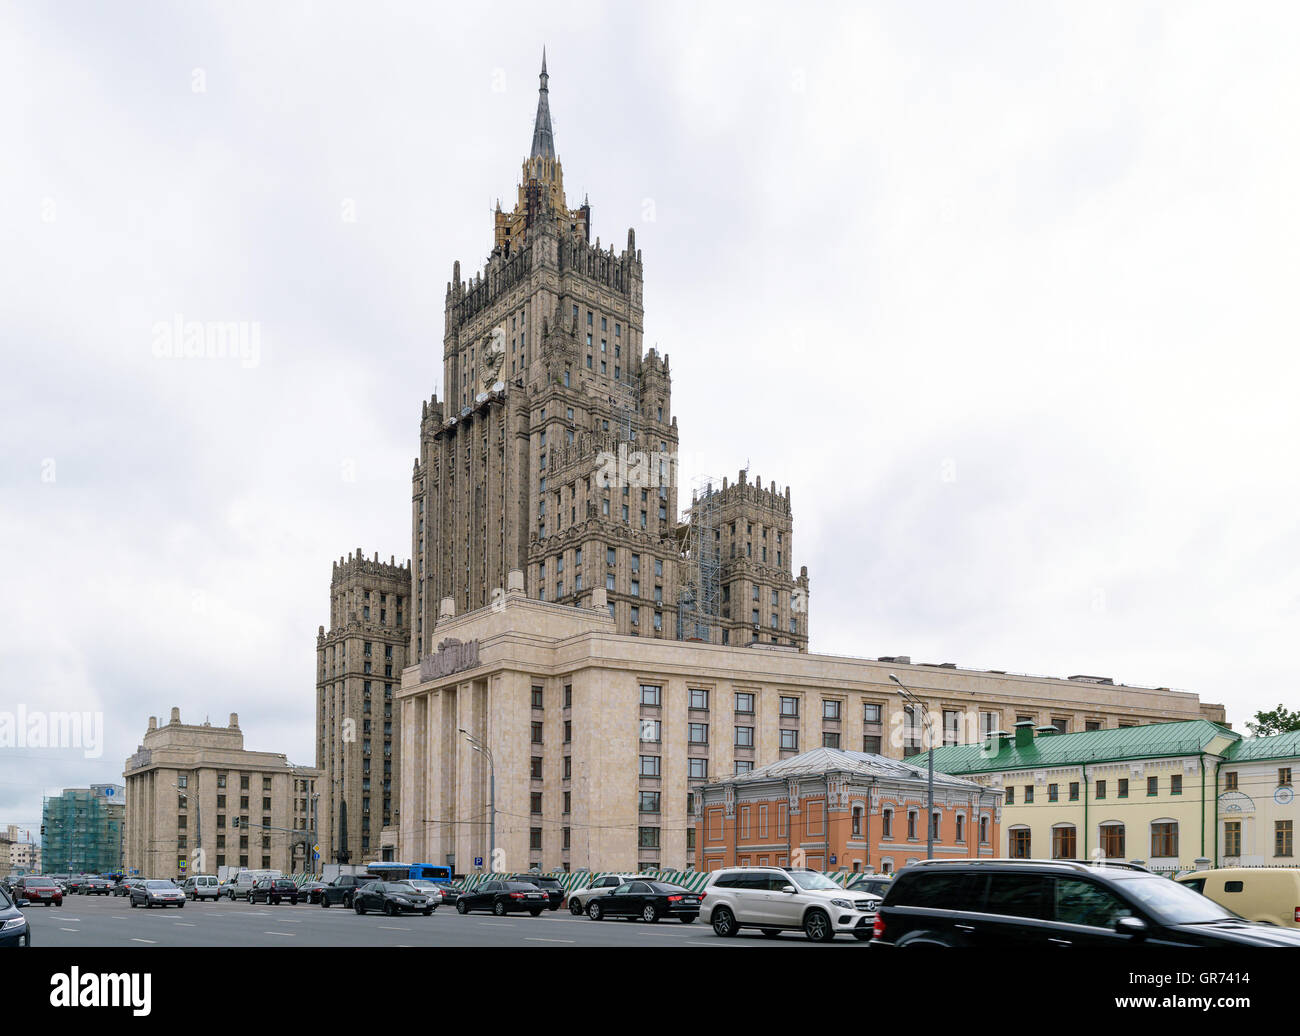 The building of the Ministry of Foreign Affairs of the Russian Federation (address: Smolensk-Sennaya Square, 32/34) - Stock Image